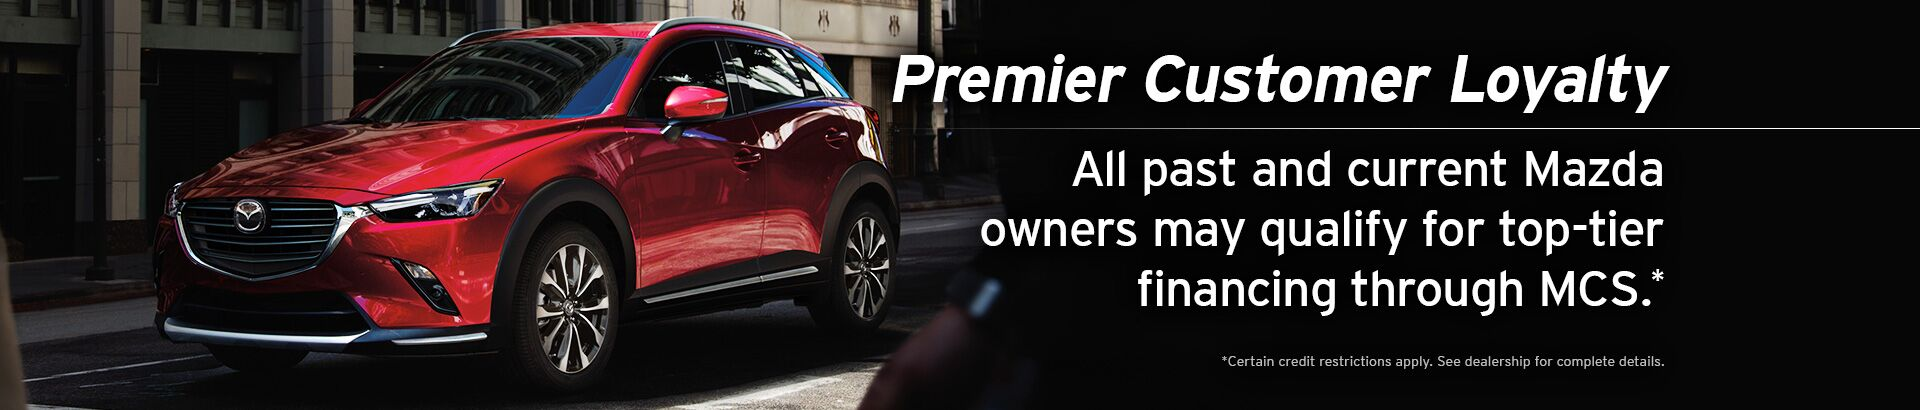 Premier Customer Loyalty